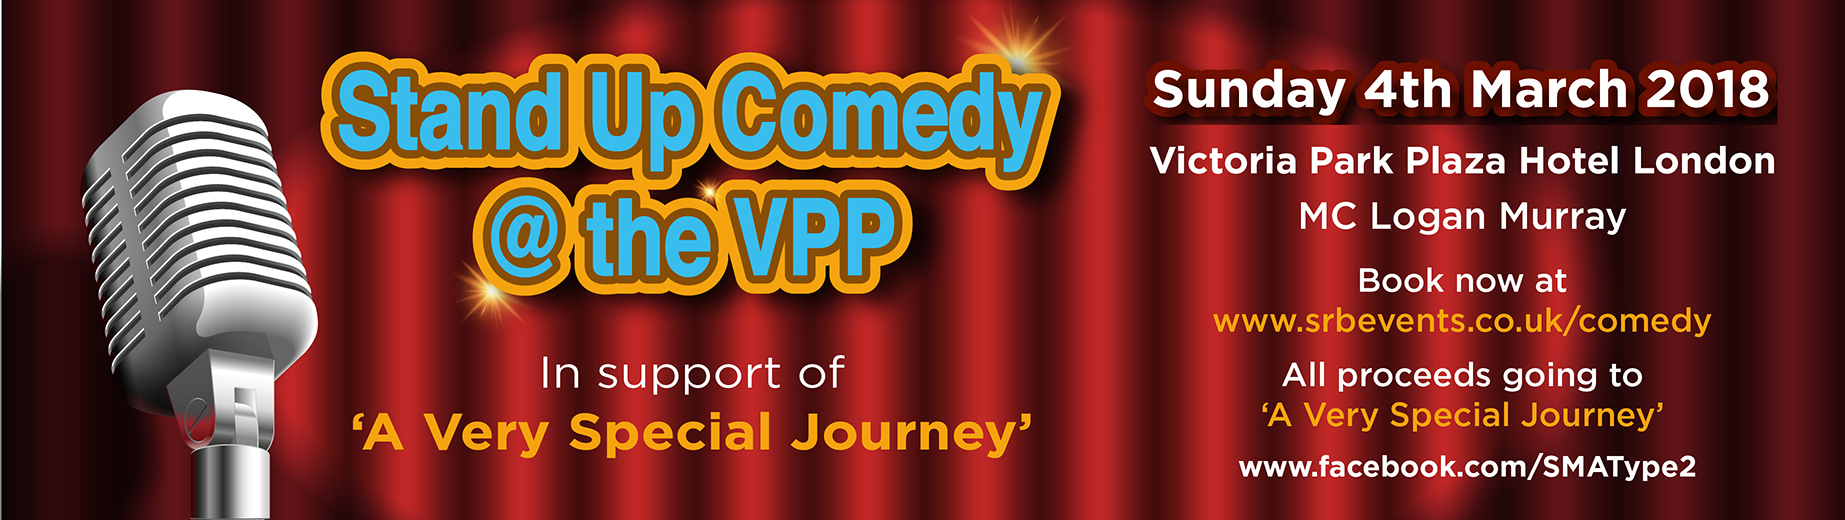 Stand Up Comedy @ the VPP